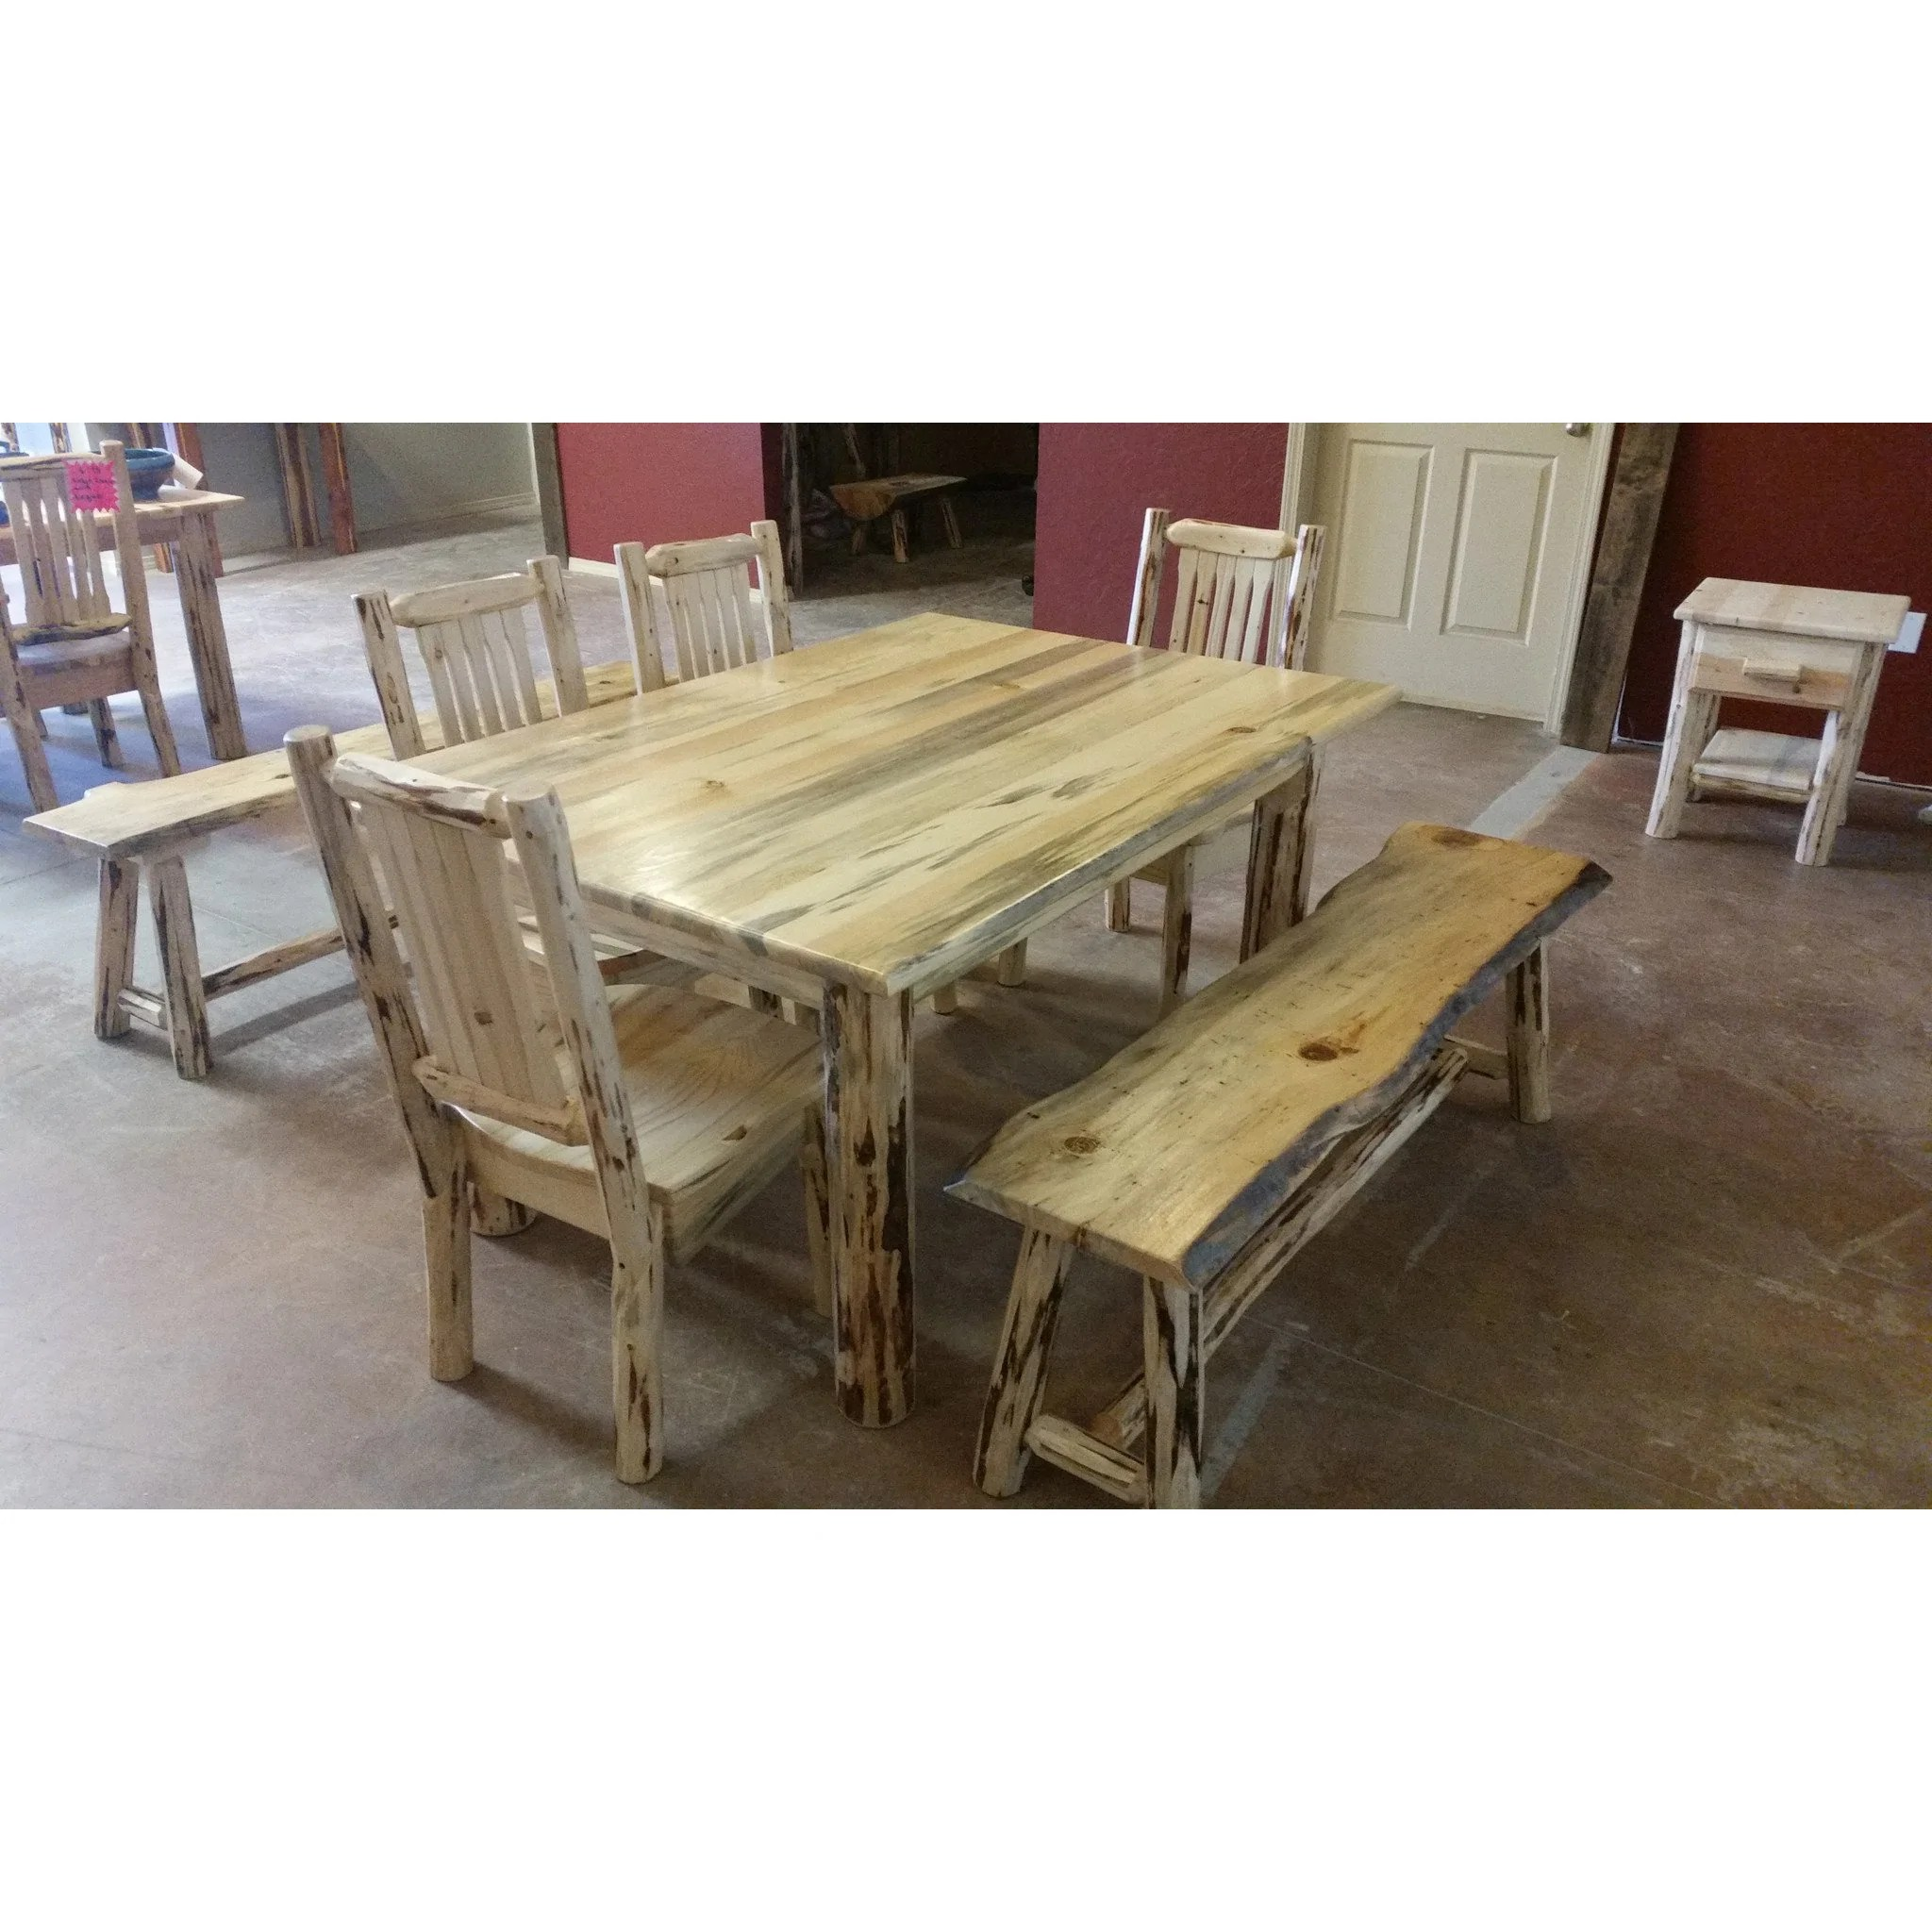 Log Table And Chairs Montana Pioneer Rustic Log Dining Bench Great Northern